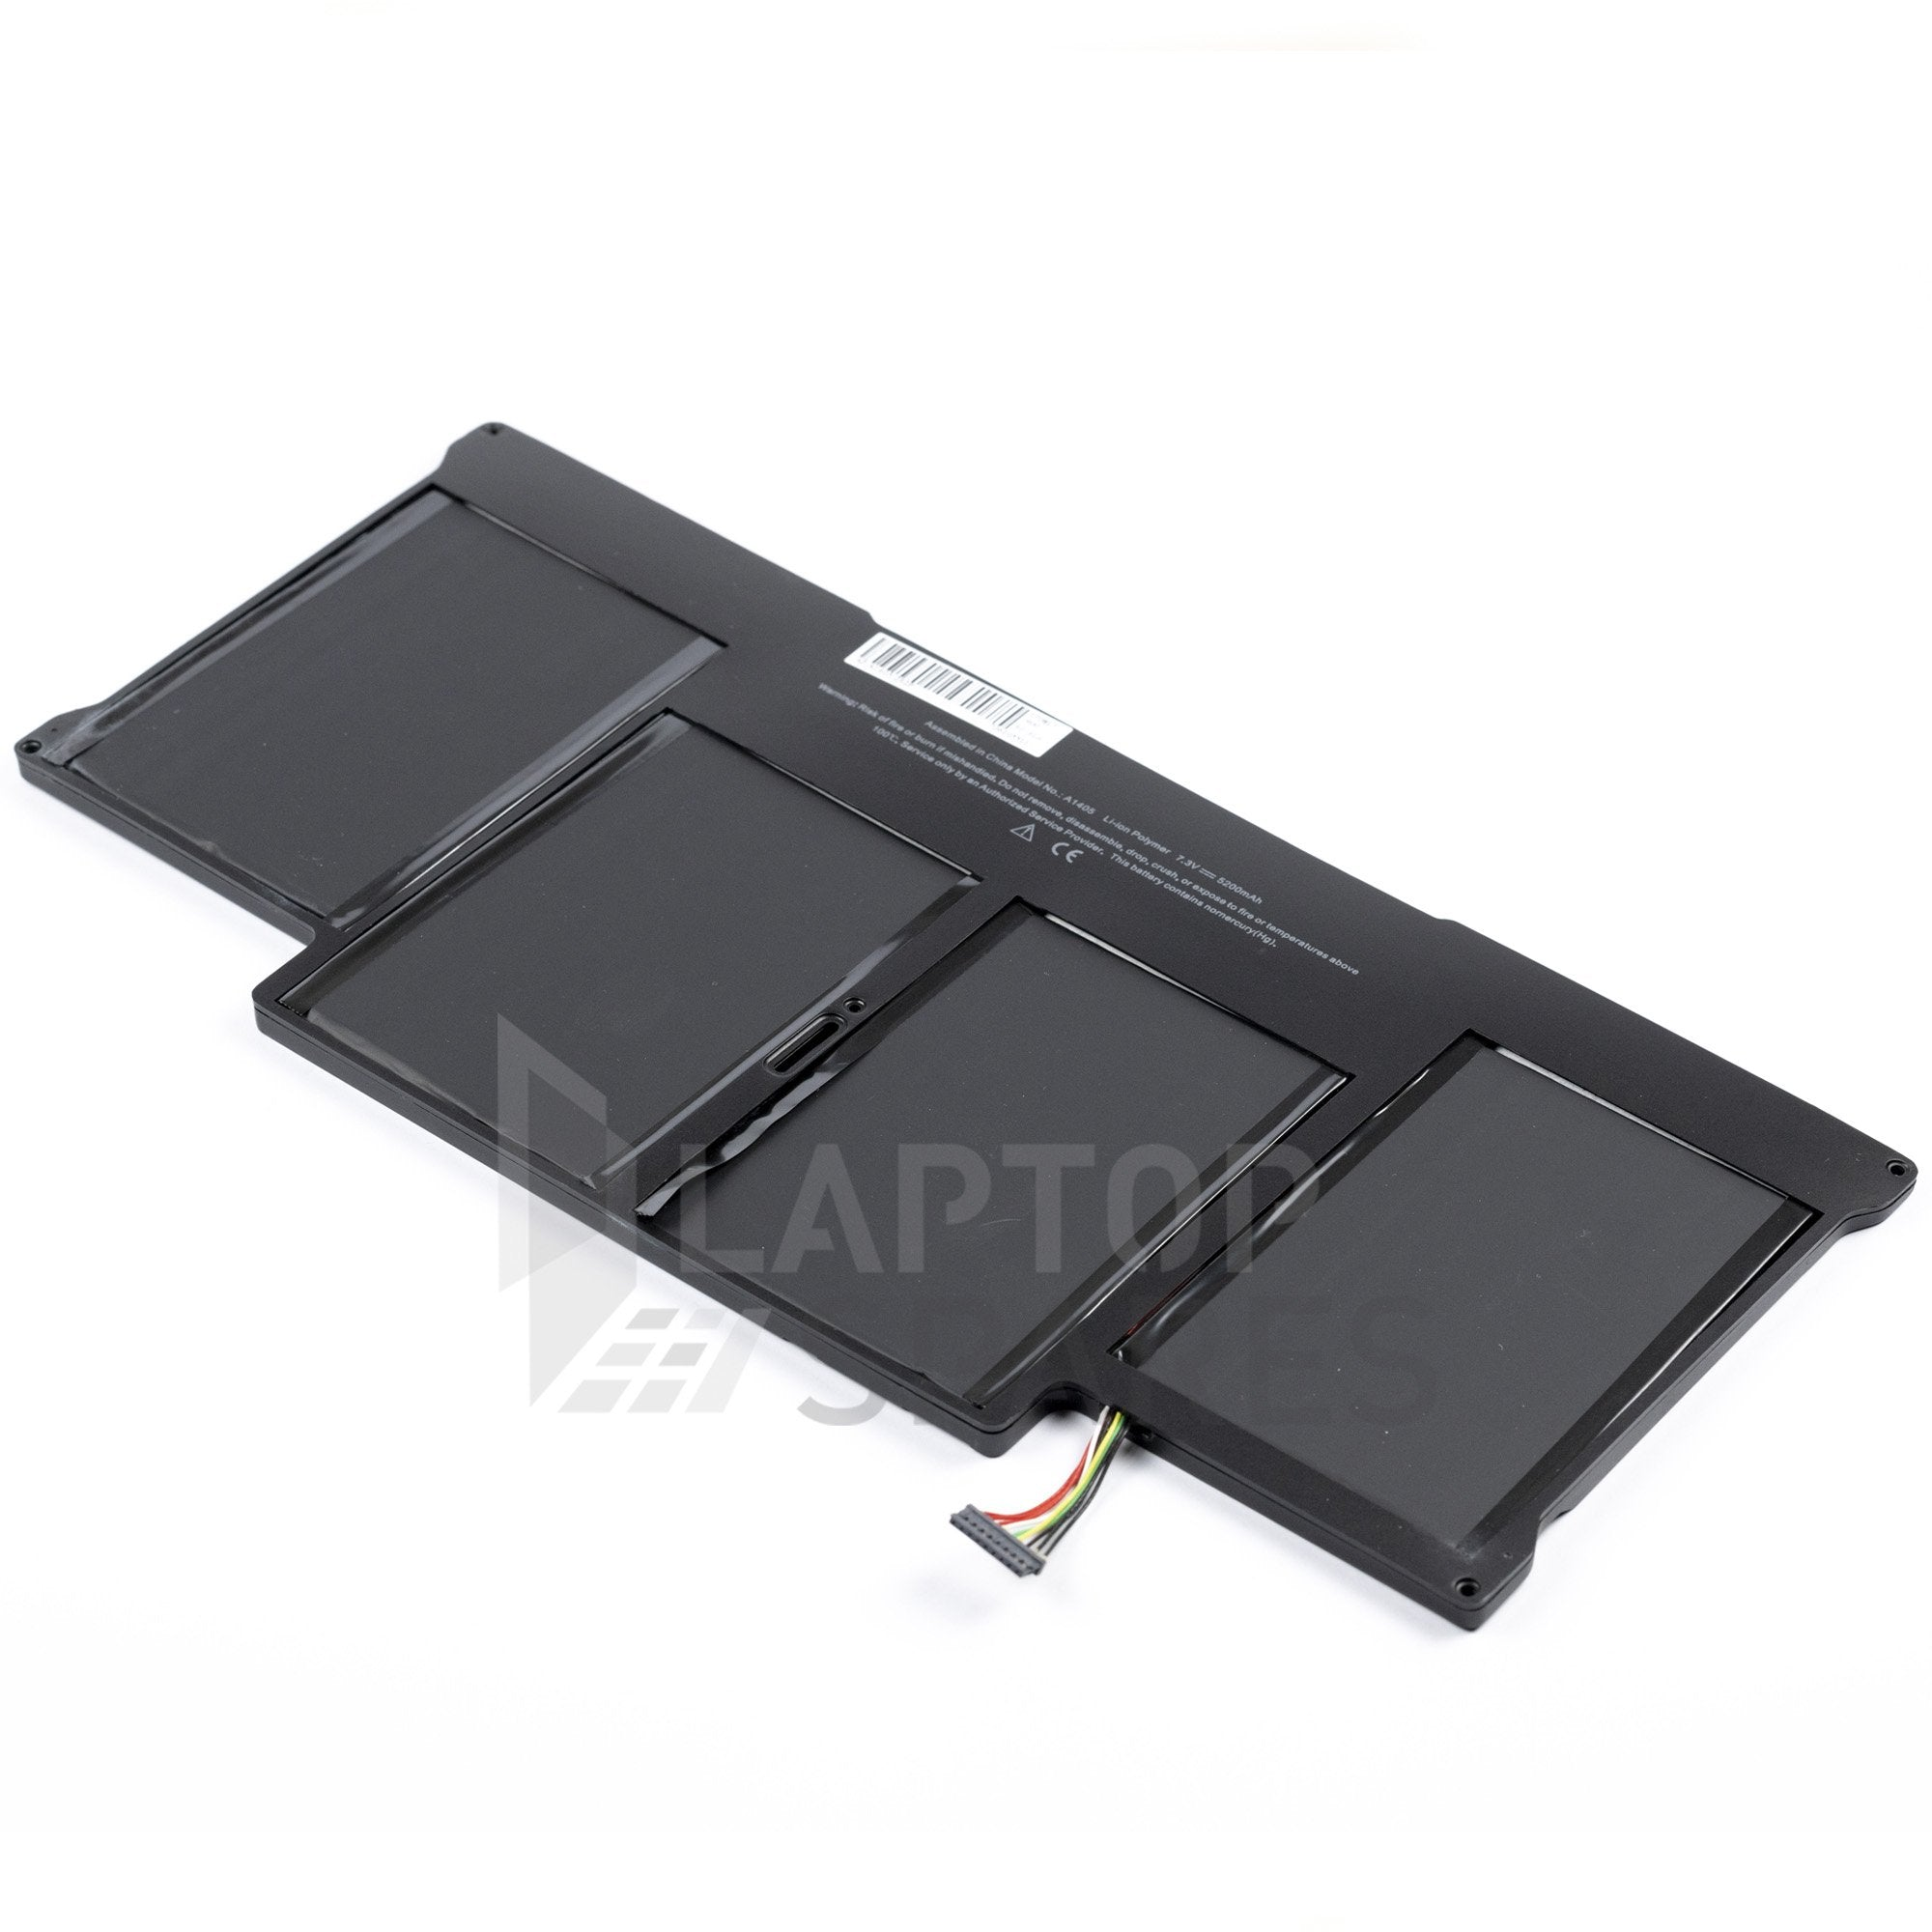 Apple A1466 (EMC 2559) 5200mAh Laptop Battery